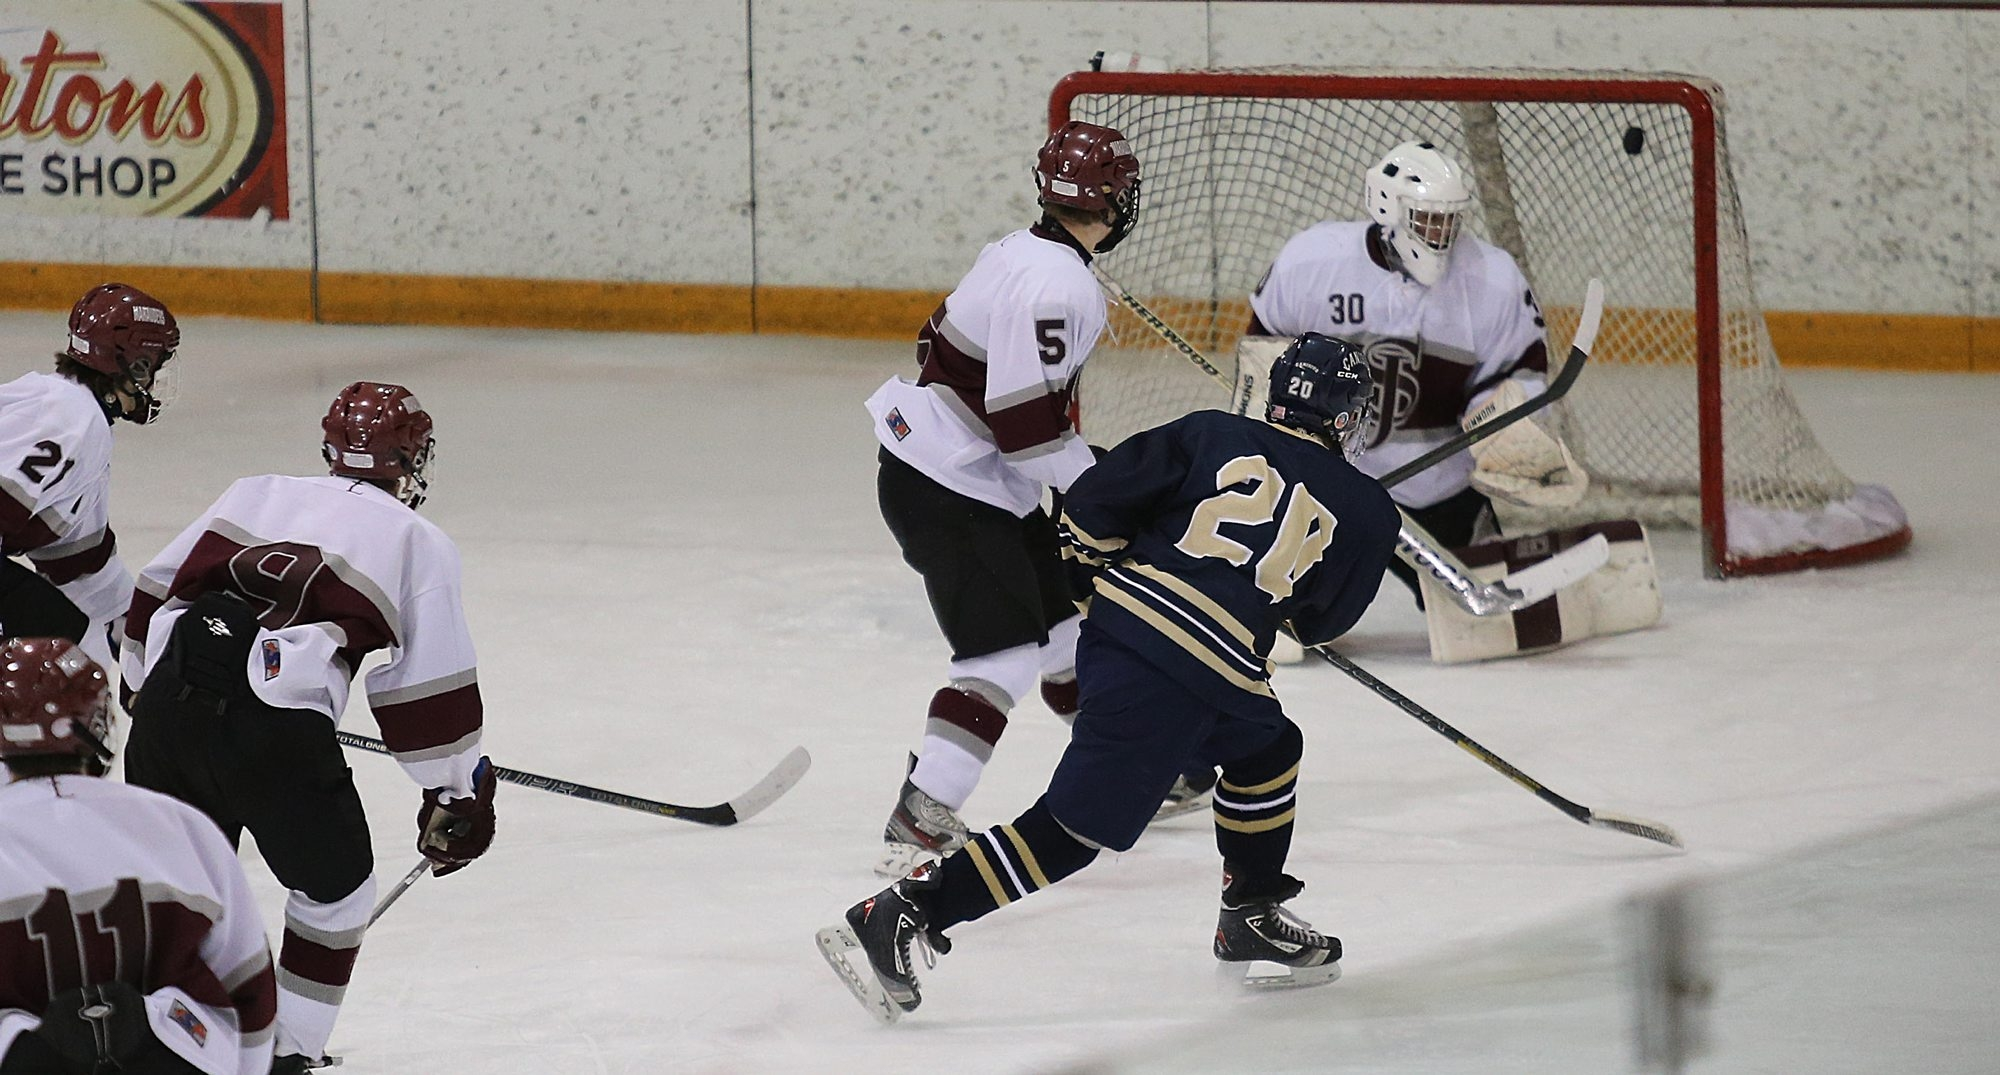 Canisius' Joe Mancuso goes top shelf to score one of his two goals in a 6-3 victory over St. Joe's at Buffalo State.